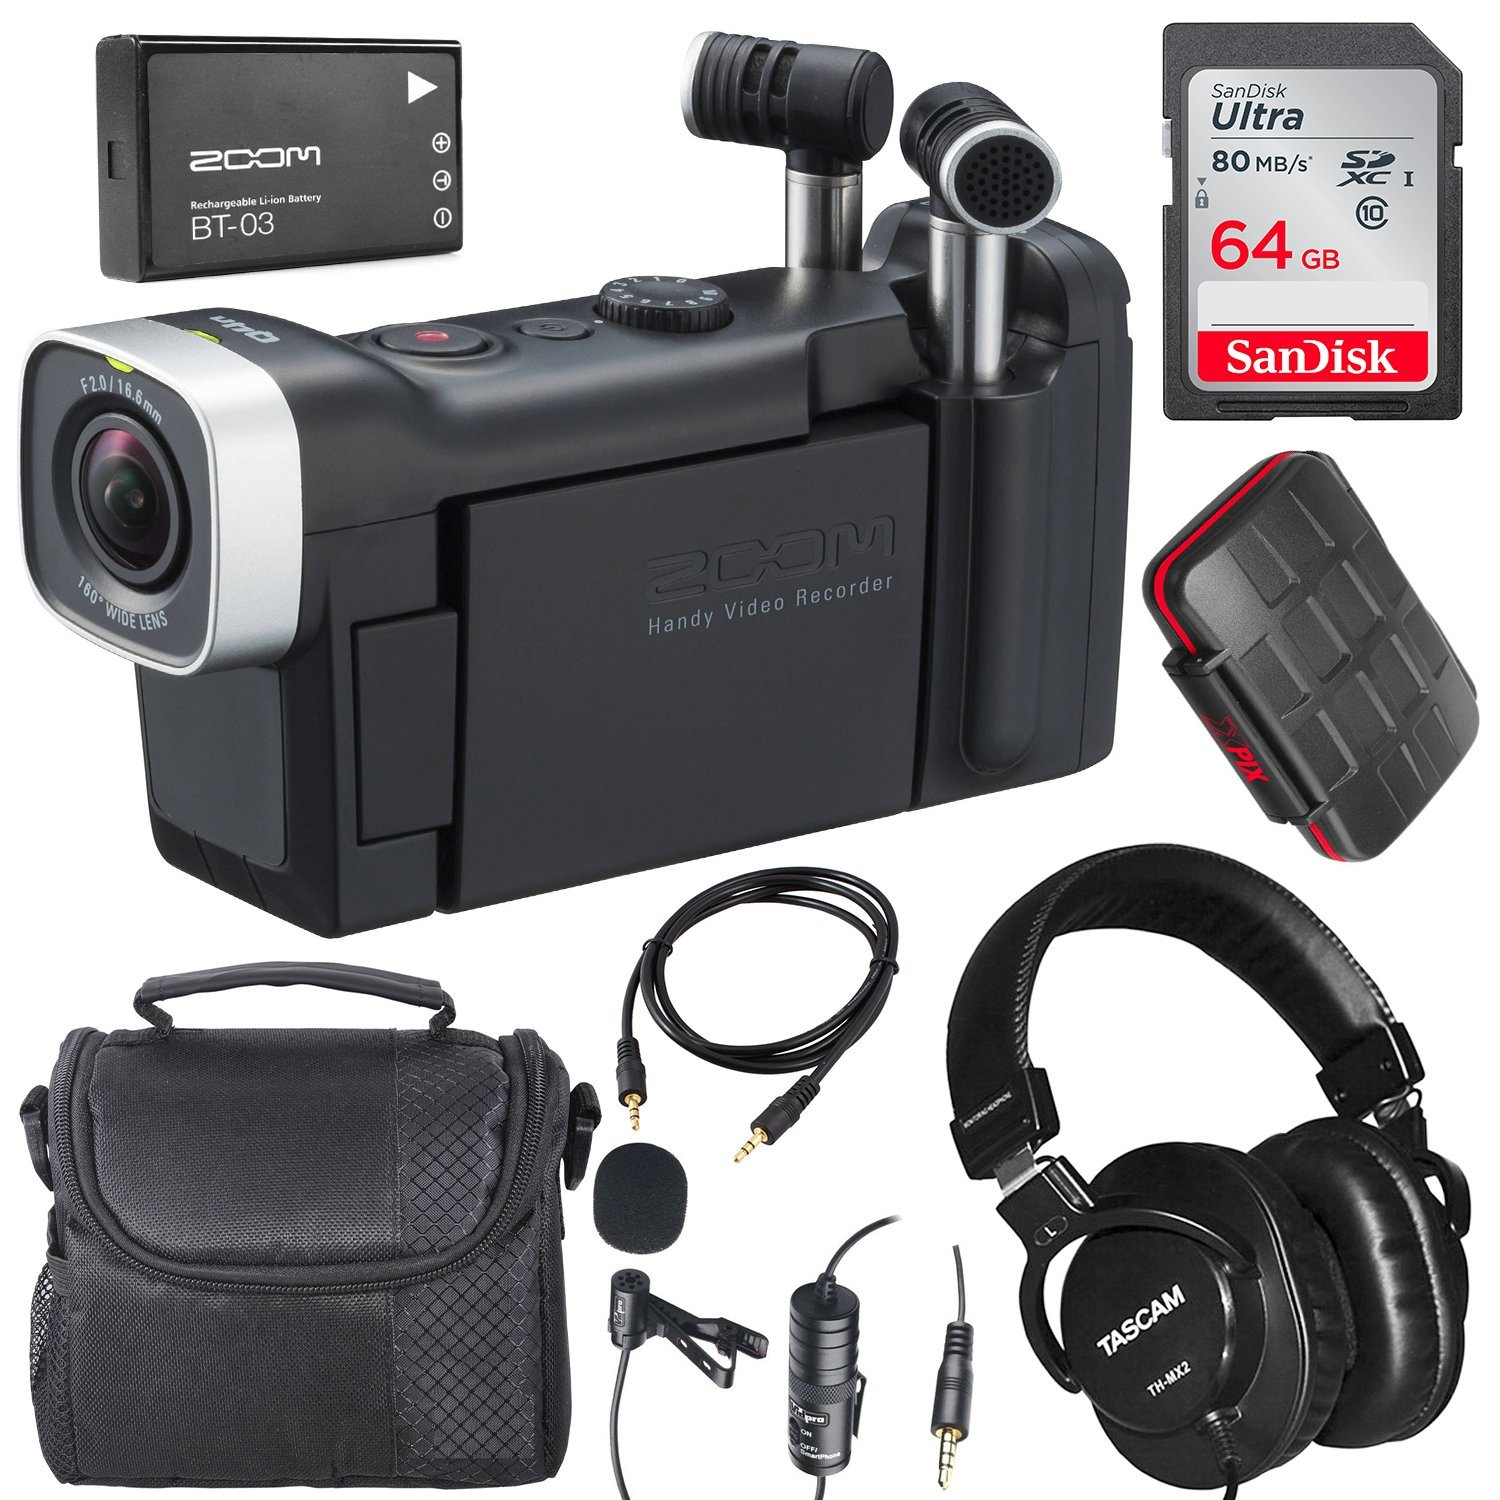 Zoom Q4n Handy Video Camera and Lavalier Microphone Deluxe Bundle w/Tascam Mixing Headphones, 64GB, Aux Cable, Case, and Xpix SD Card Case by Photo Savings (Image #1)